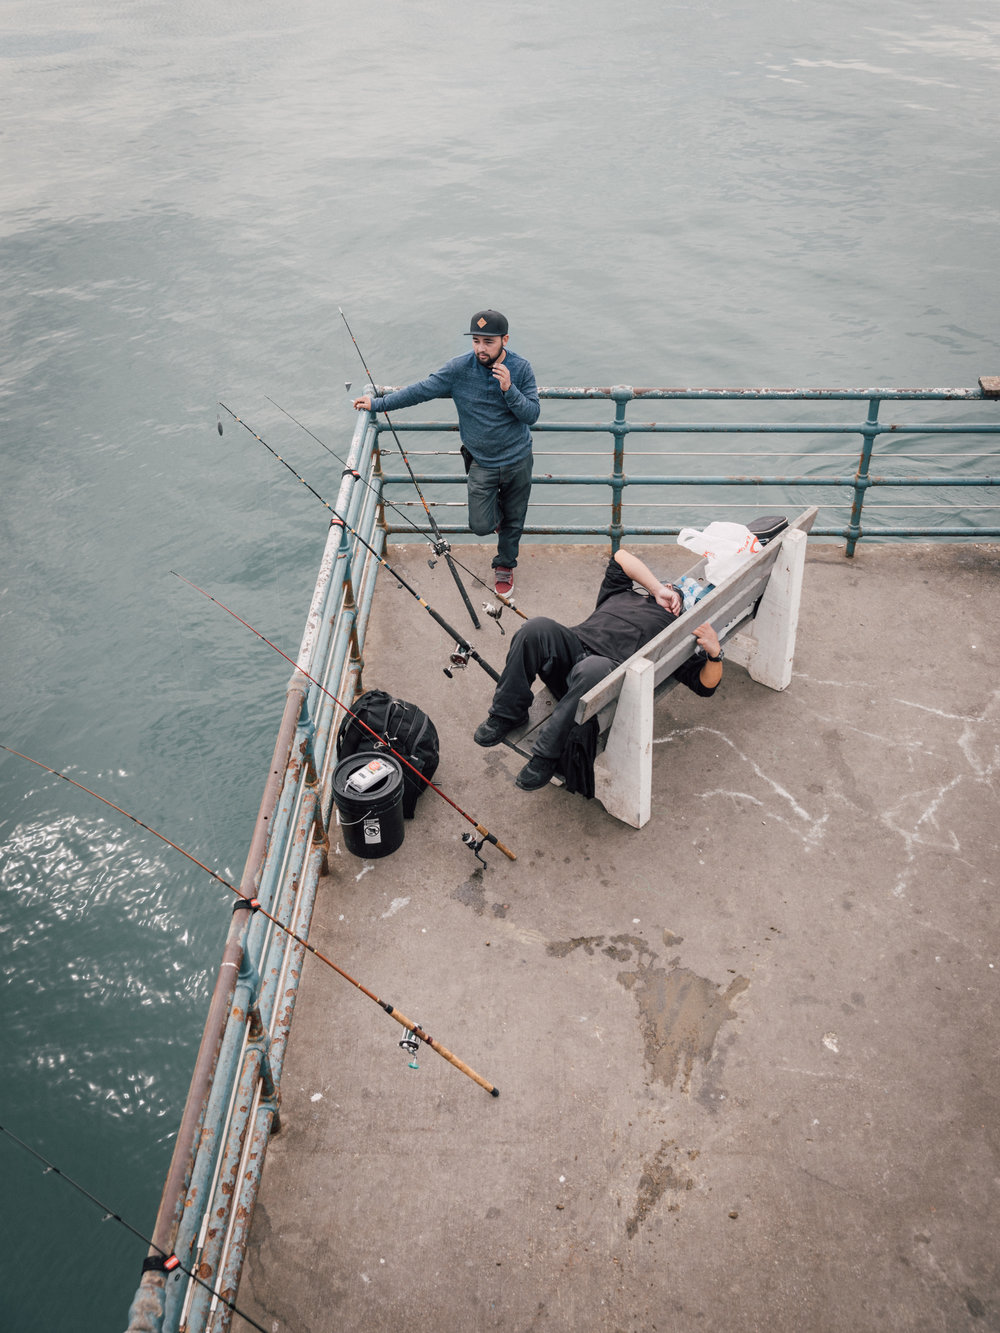 Waiting for the Catch  |4.1.18| Seattle, Washington